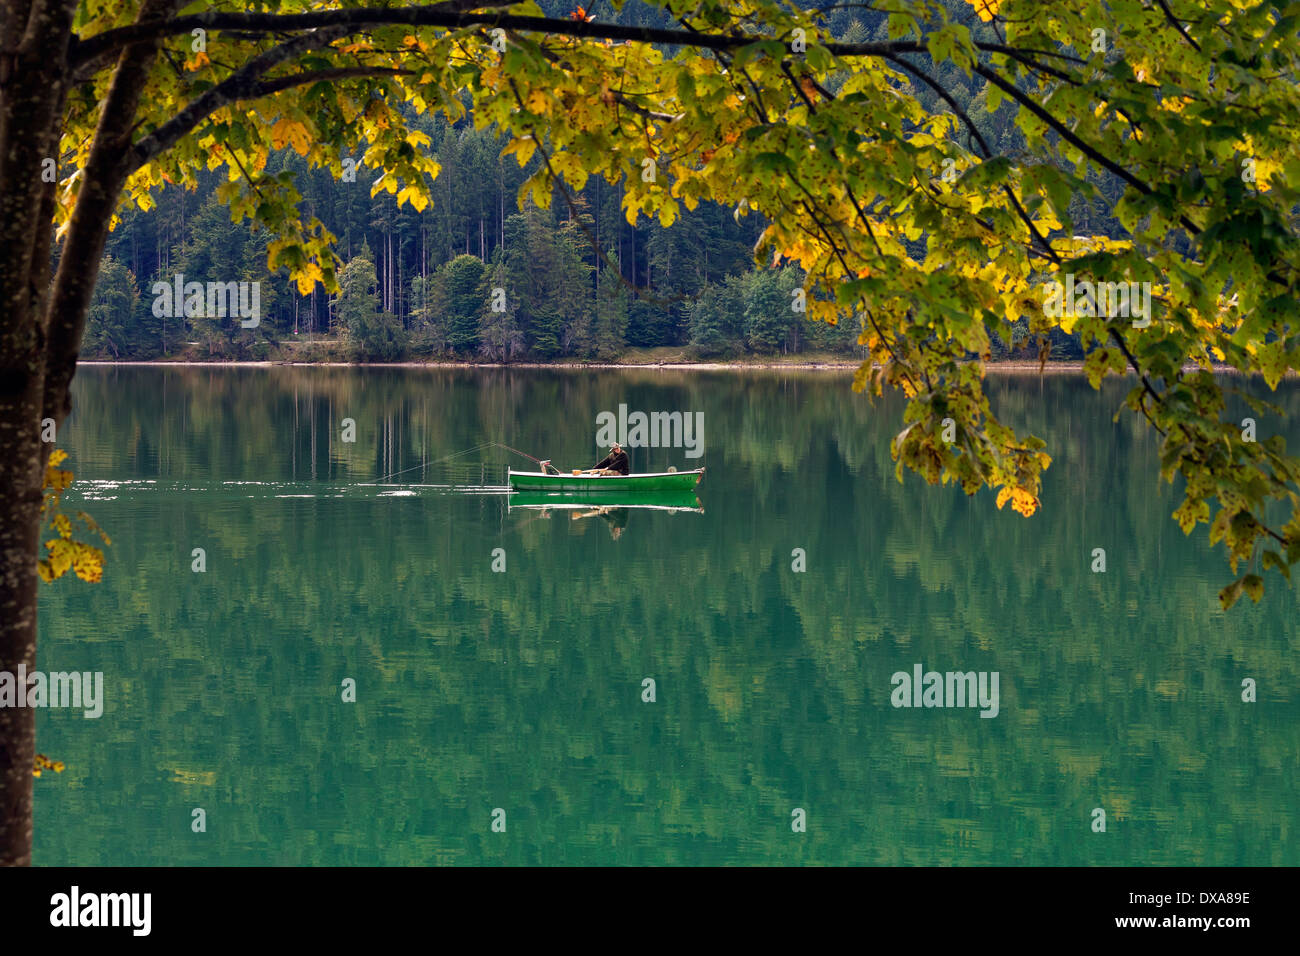 Angler fishing from rowing boat on the Walchensee / Lake Walchen in autumn, Upper Bavaria, Germany - Stock Image